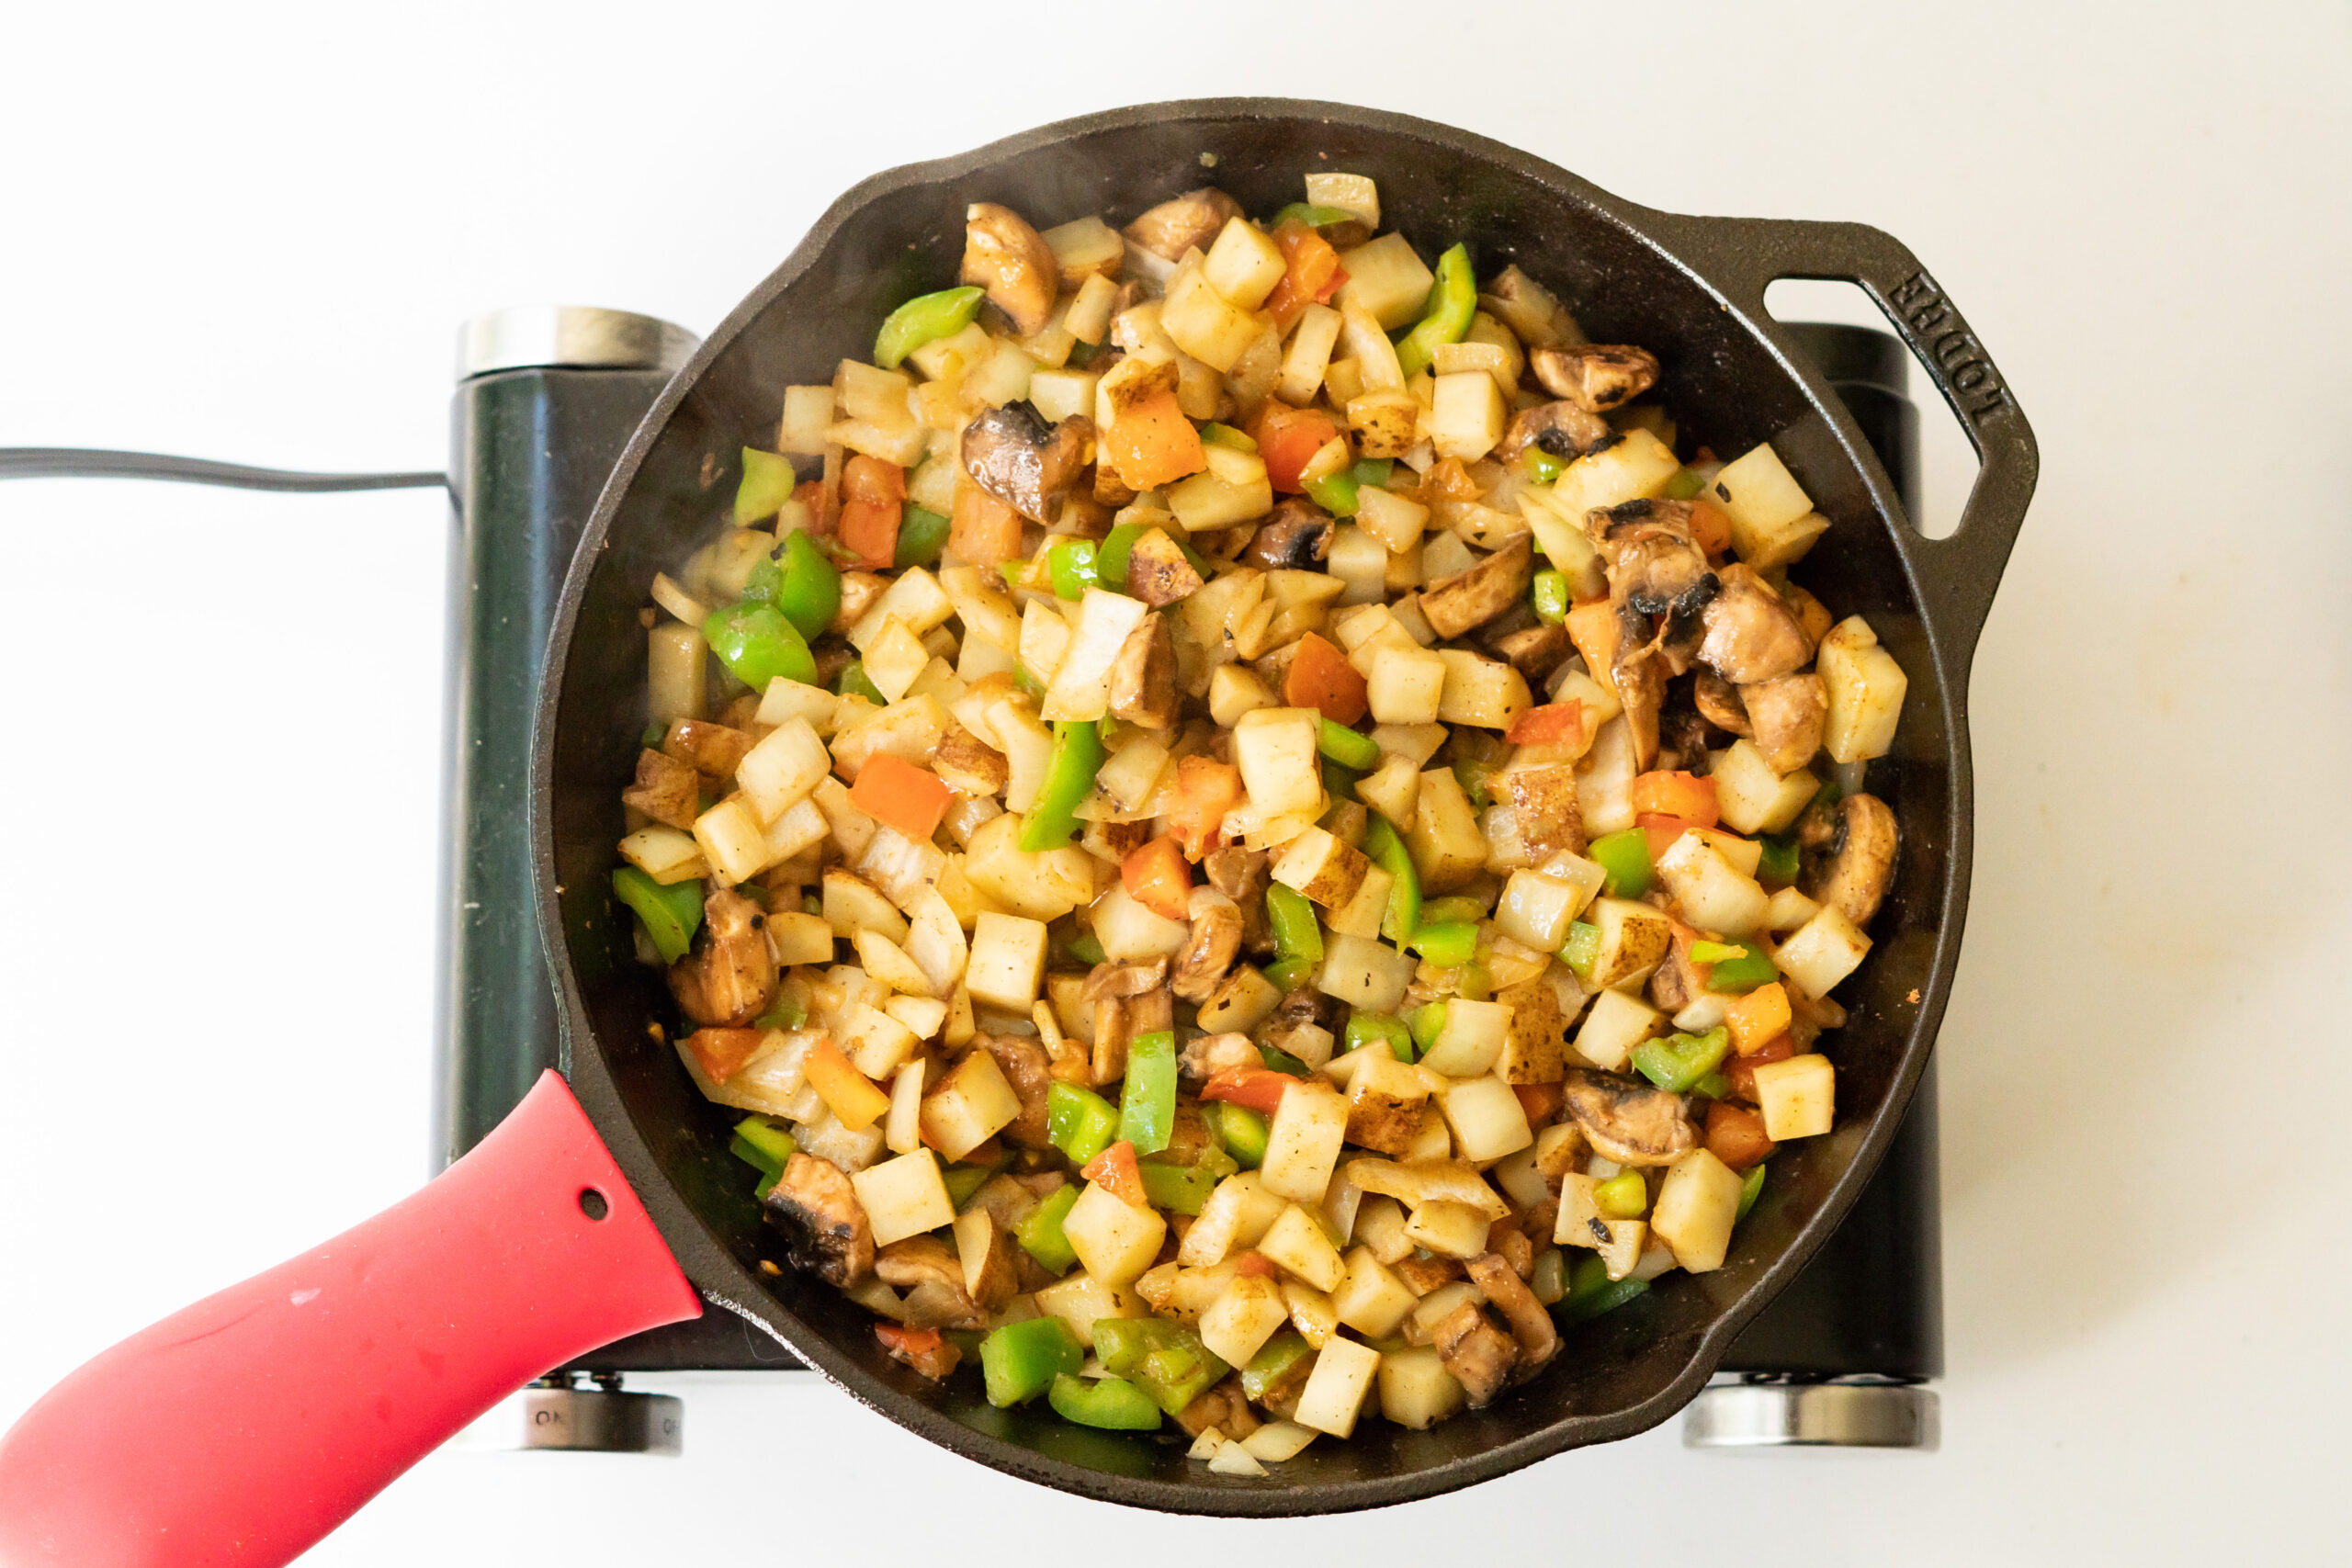 Overhead view of vegetables and potatoes fried with spices in a cast iron skillet.